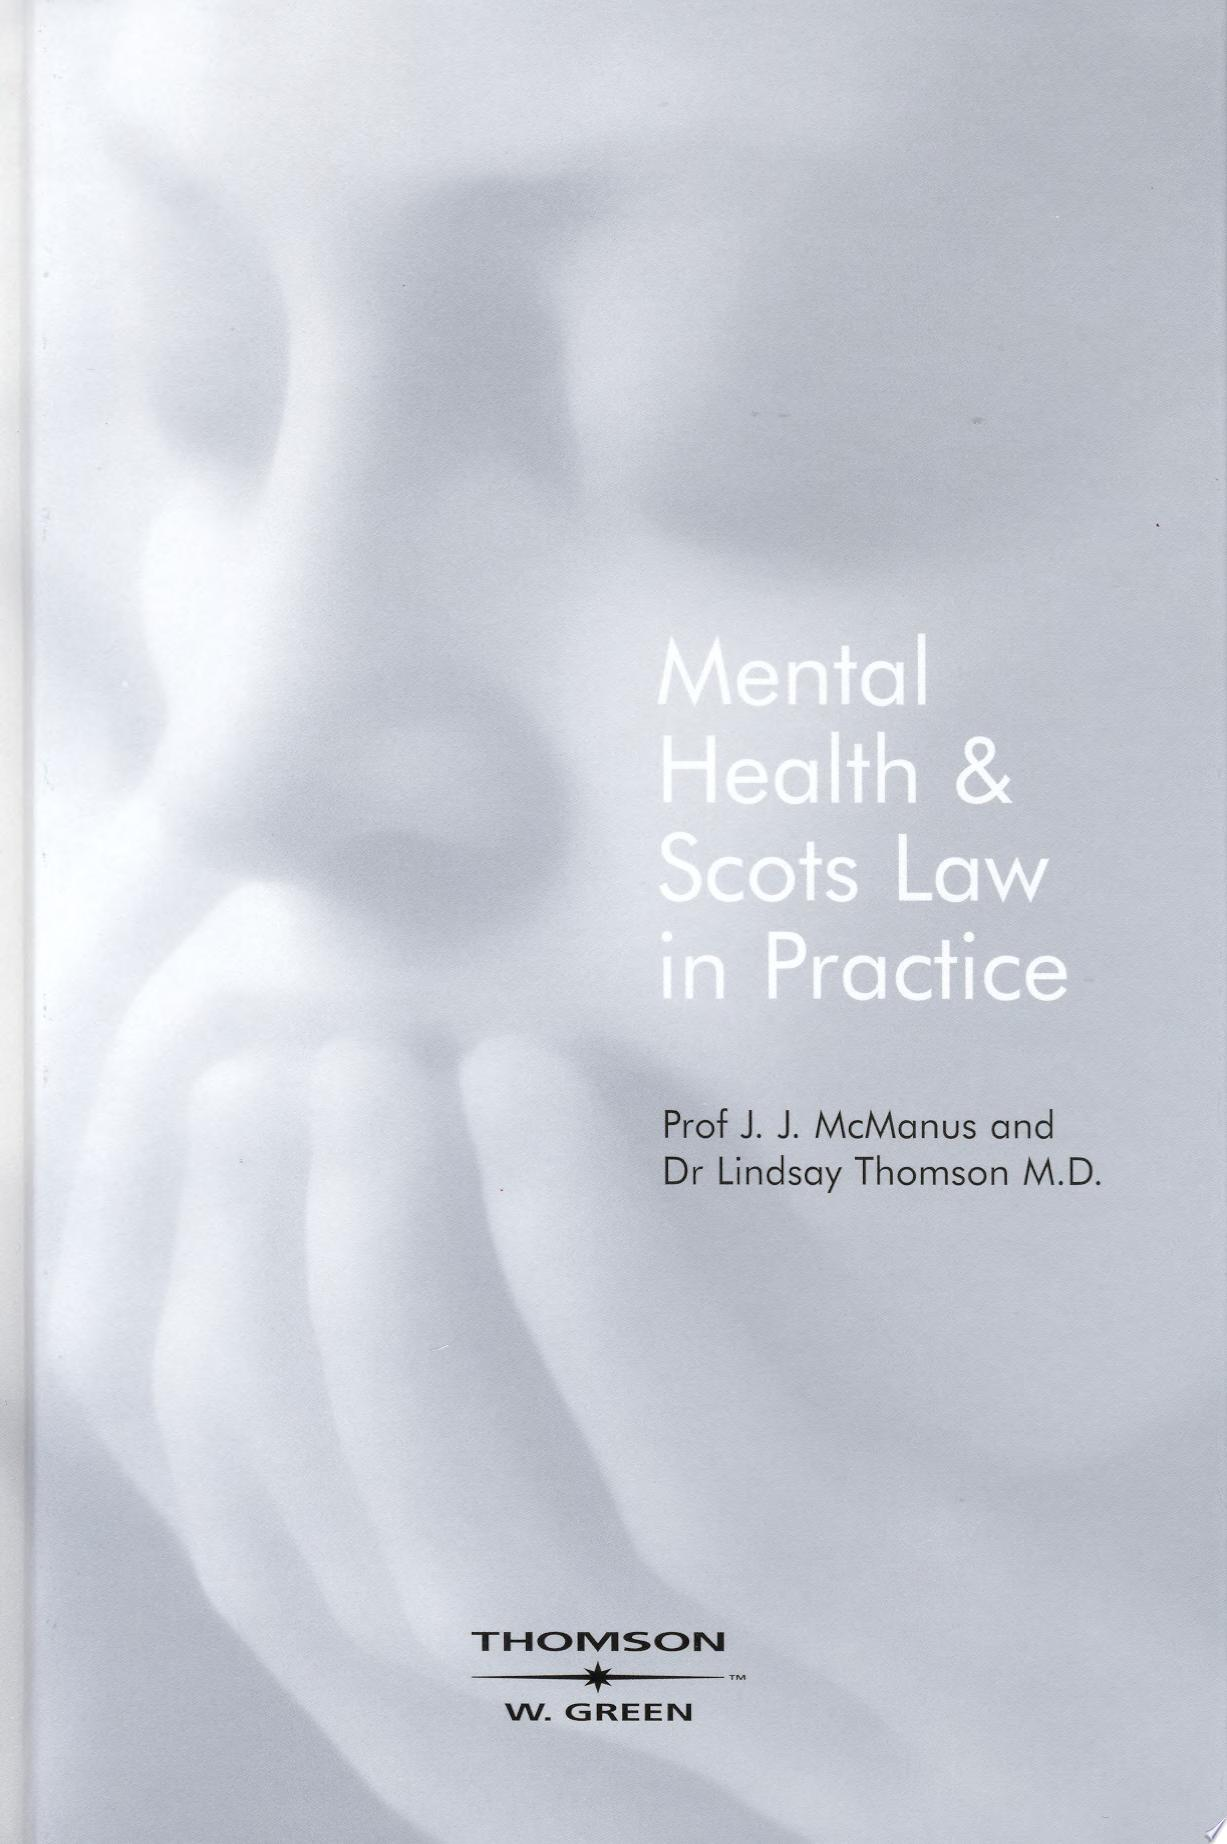 Mental Health and Scots Law in Practice